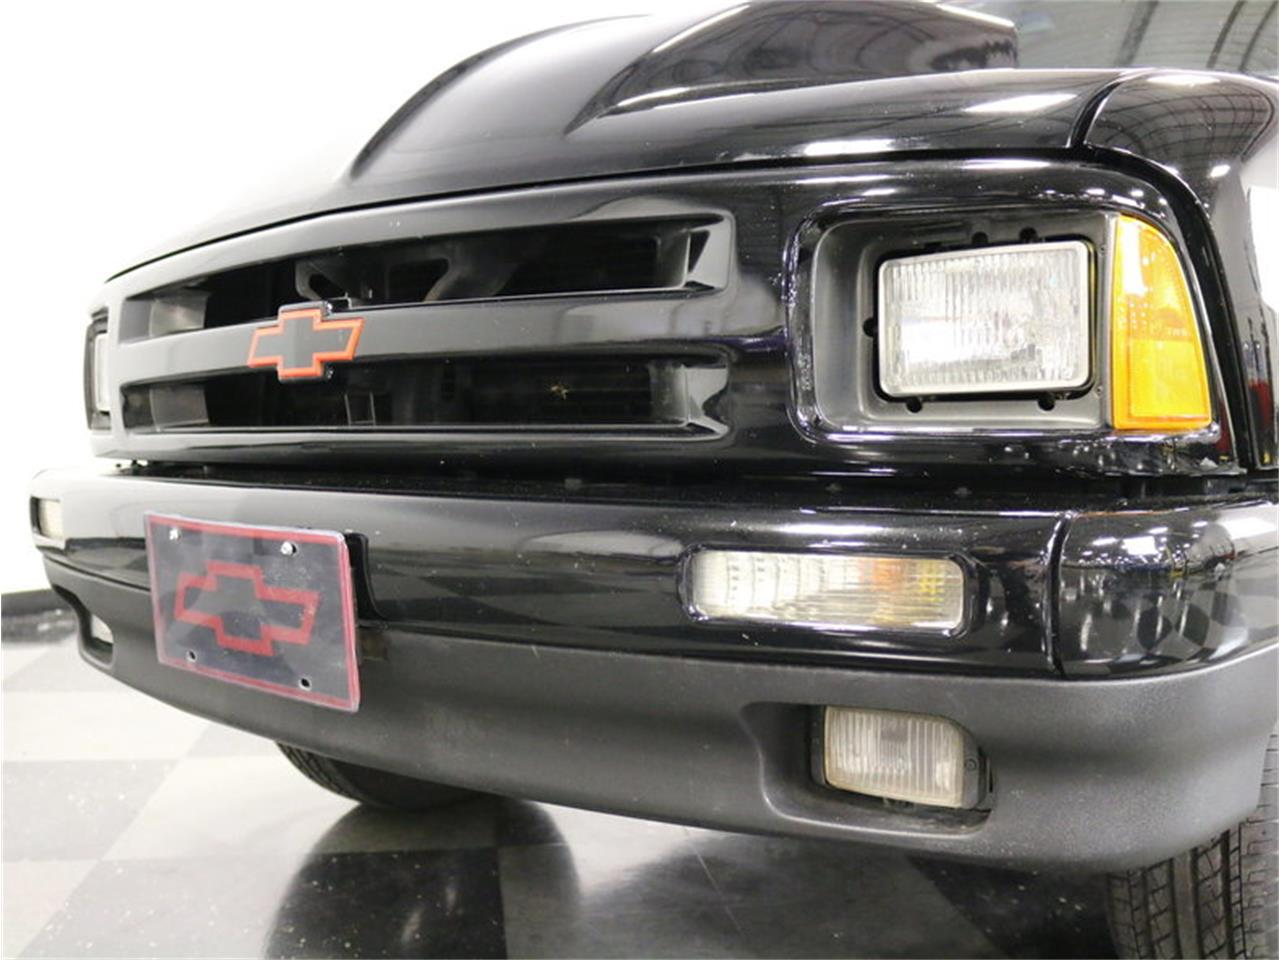 Large Picture of '95 Chevrolet S-10 SS Pro Street located in Texas - $17,995.00 Offered by Streetside Classics - Dallas / Fort Worth - MOBZ